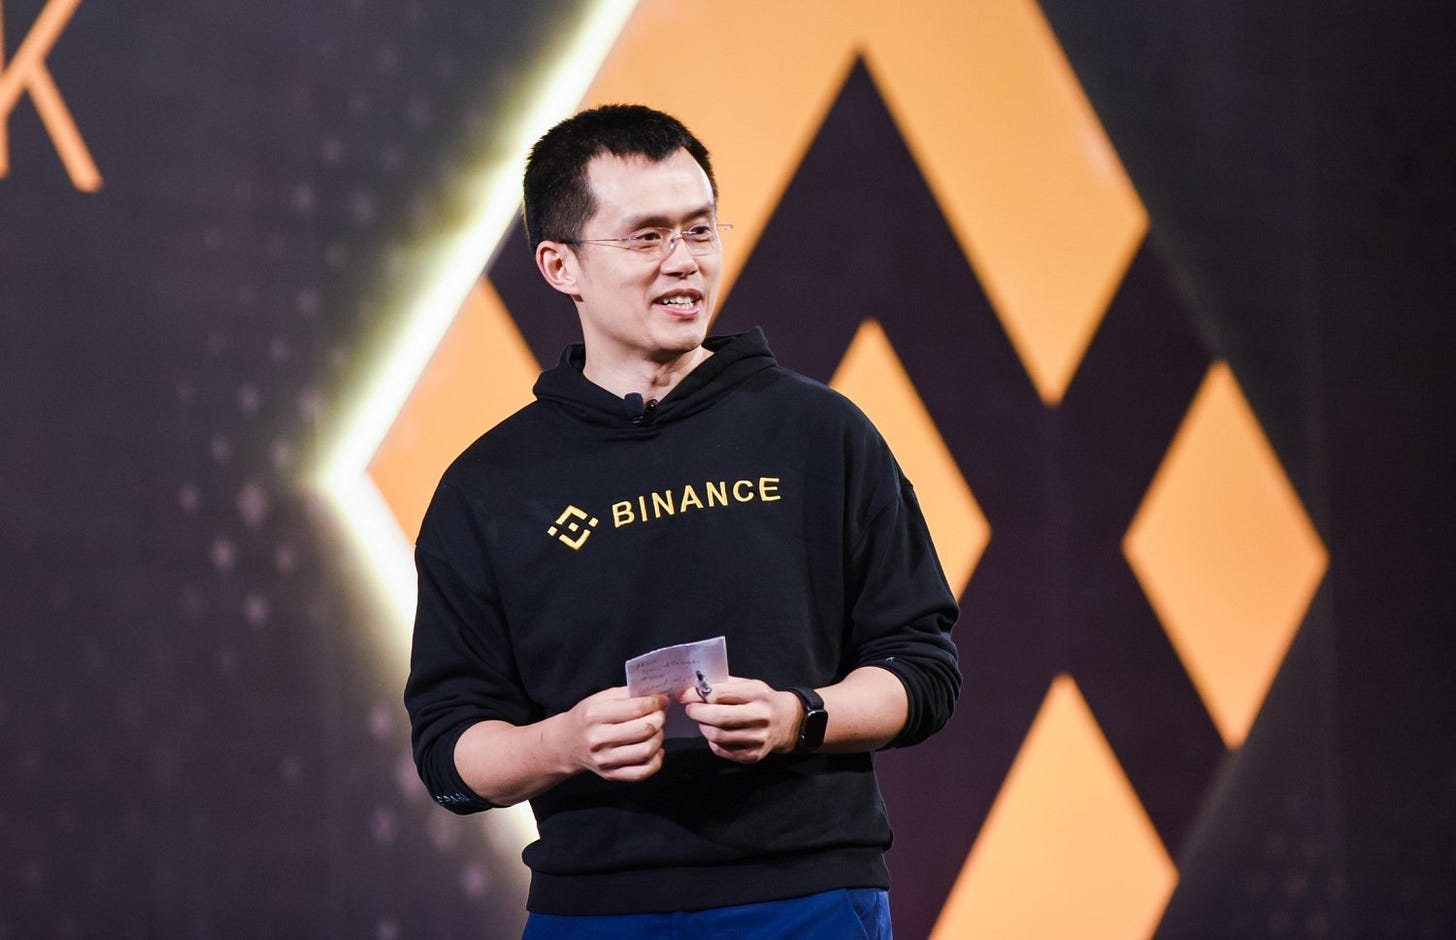 Binance Now Accepting Fiat Through Alipay, WeChat - CoinDesk